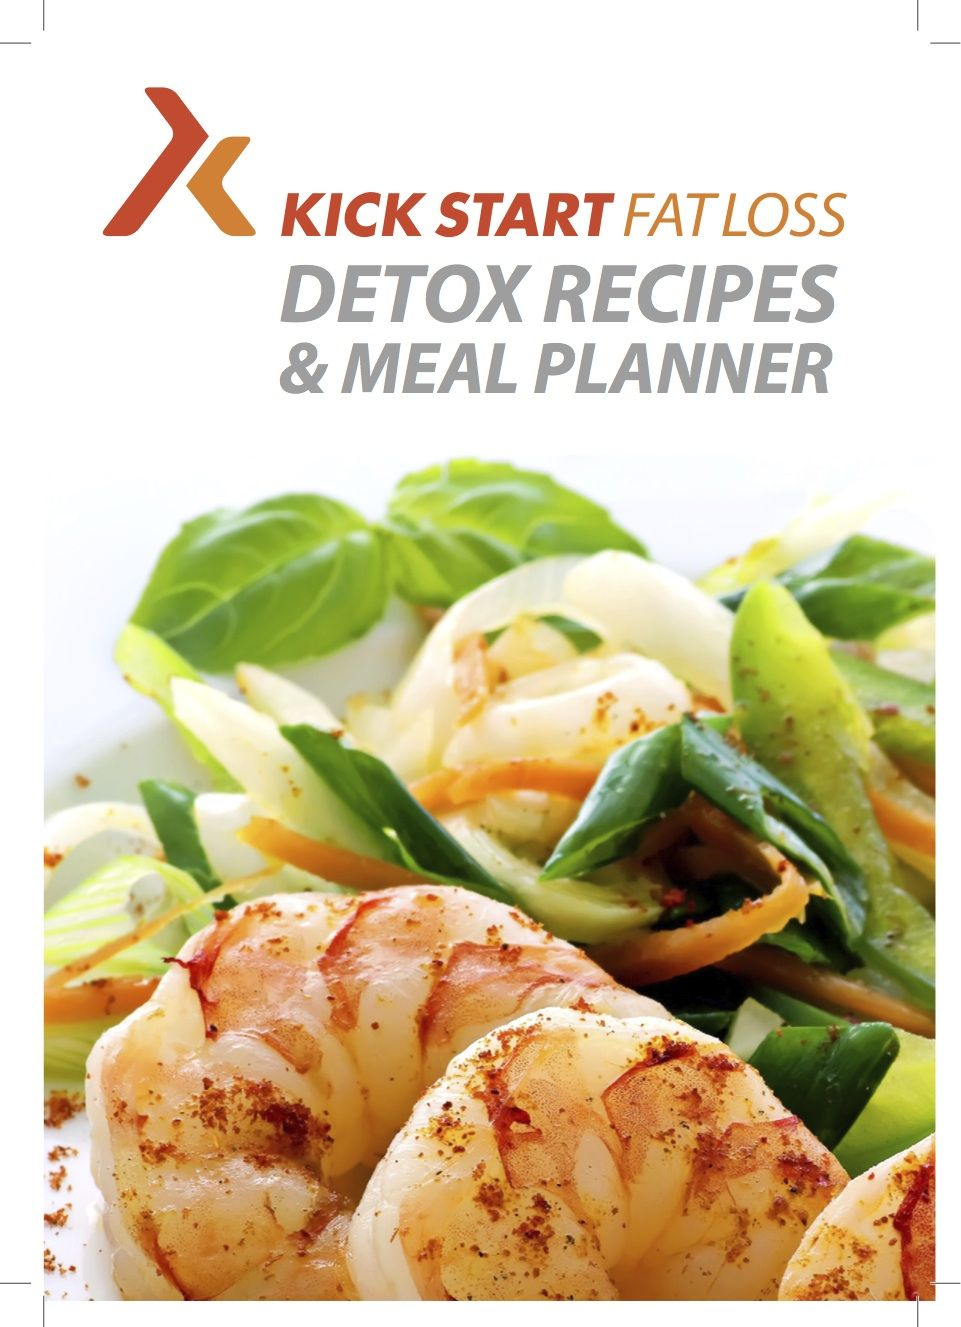 Free download a copy of my ksfl detox recipe meal planner ebook free download a copy of my ksfl detox recipe meal planner ebook https forumfinder Gallery